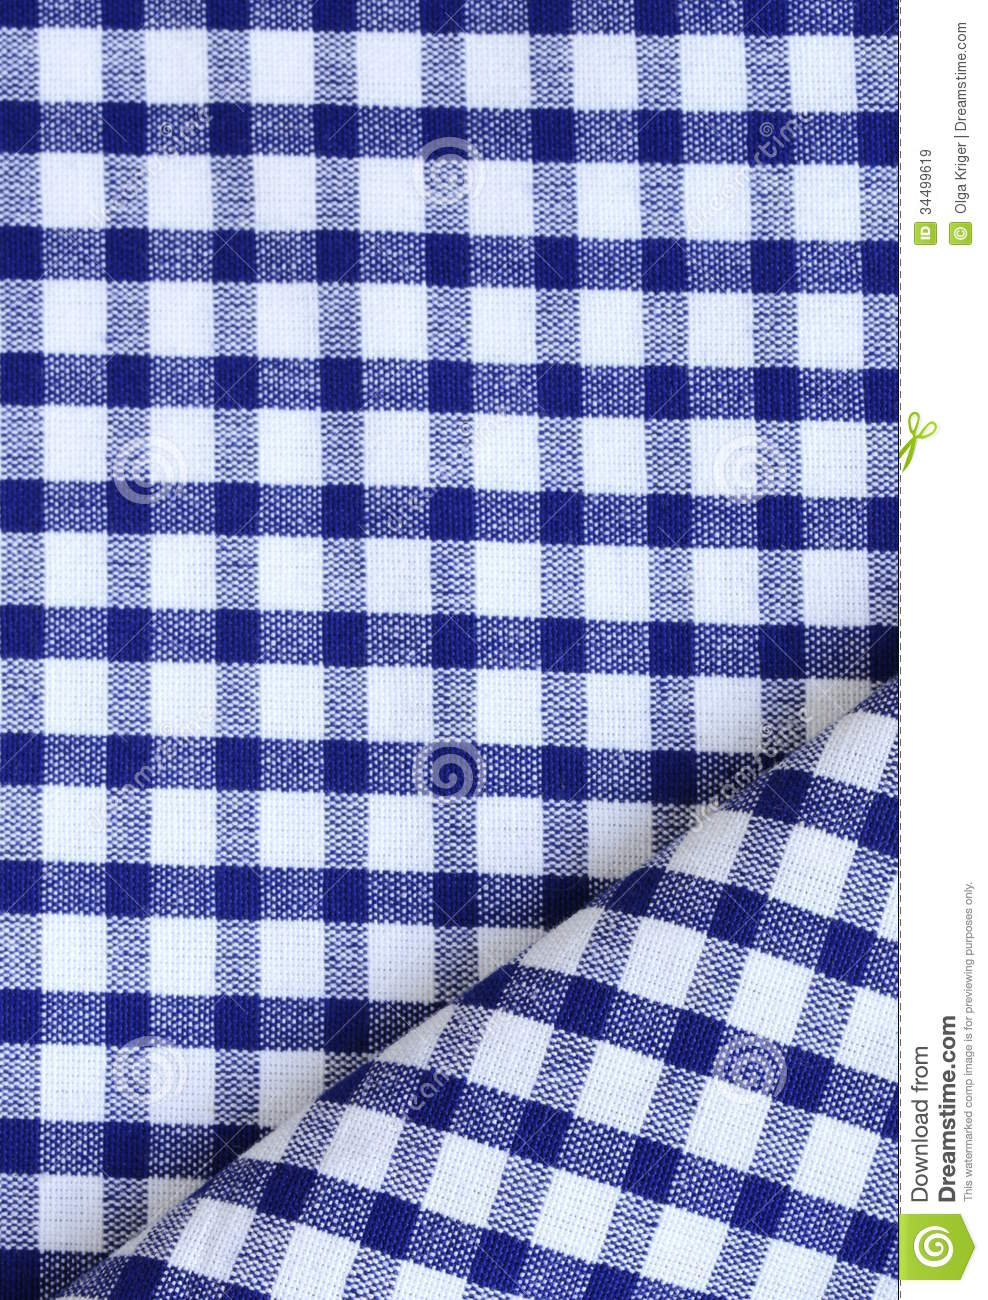 Kitchen Towel In The Blue Checkered